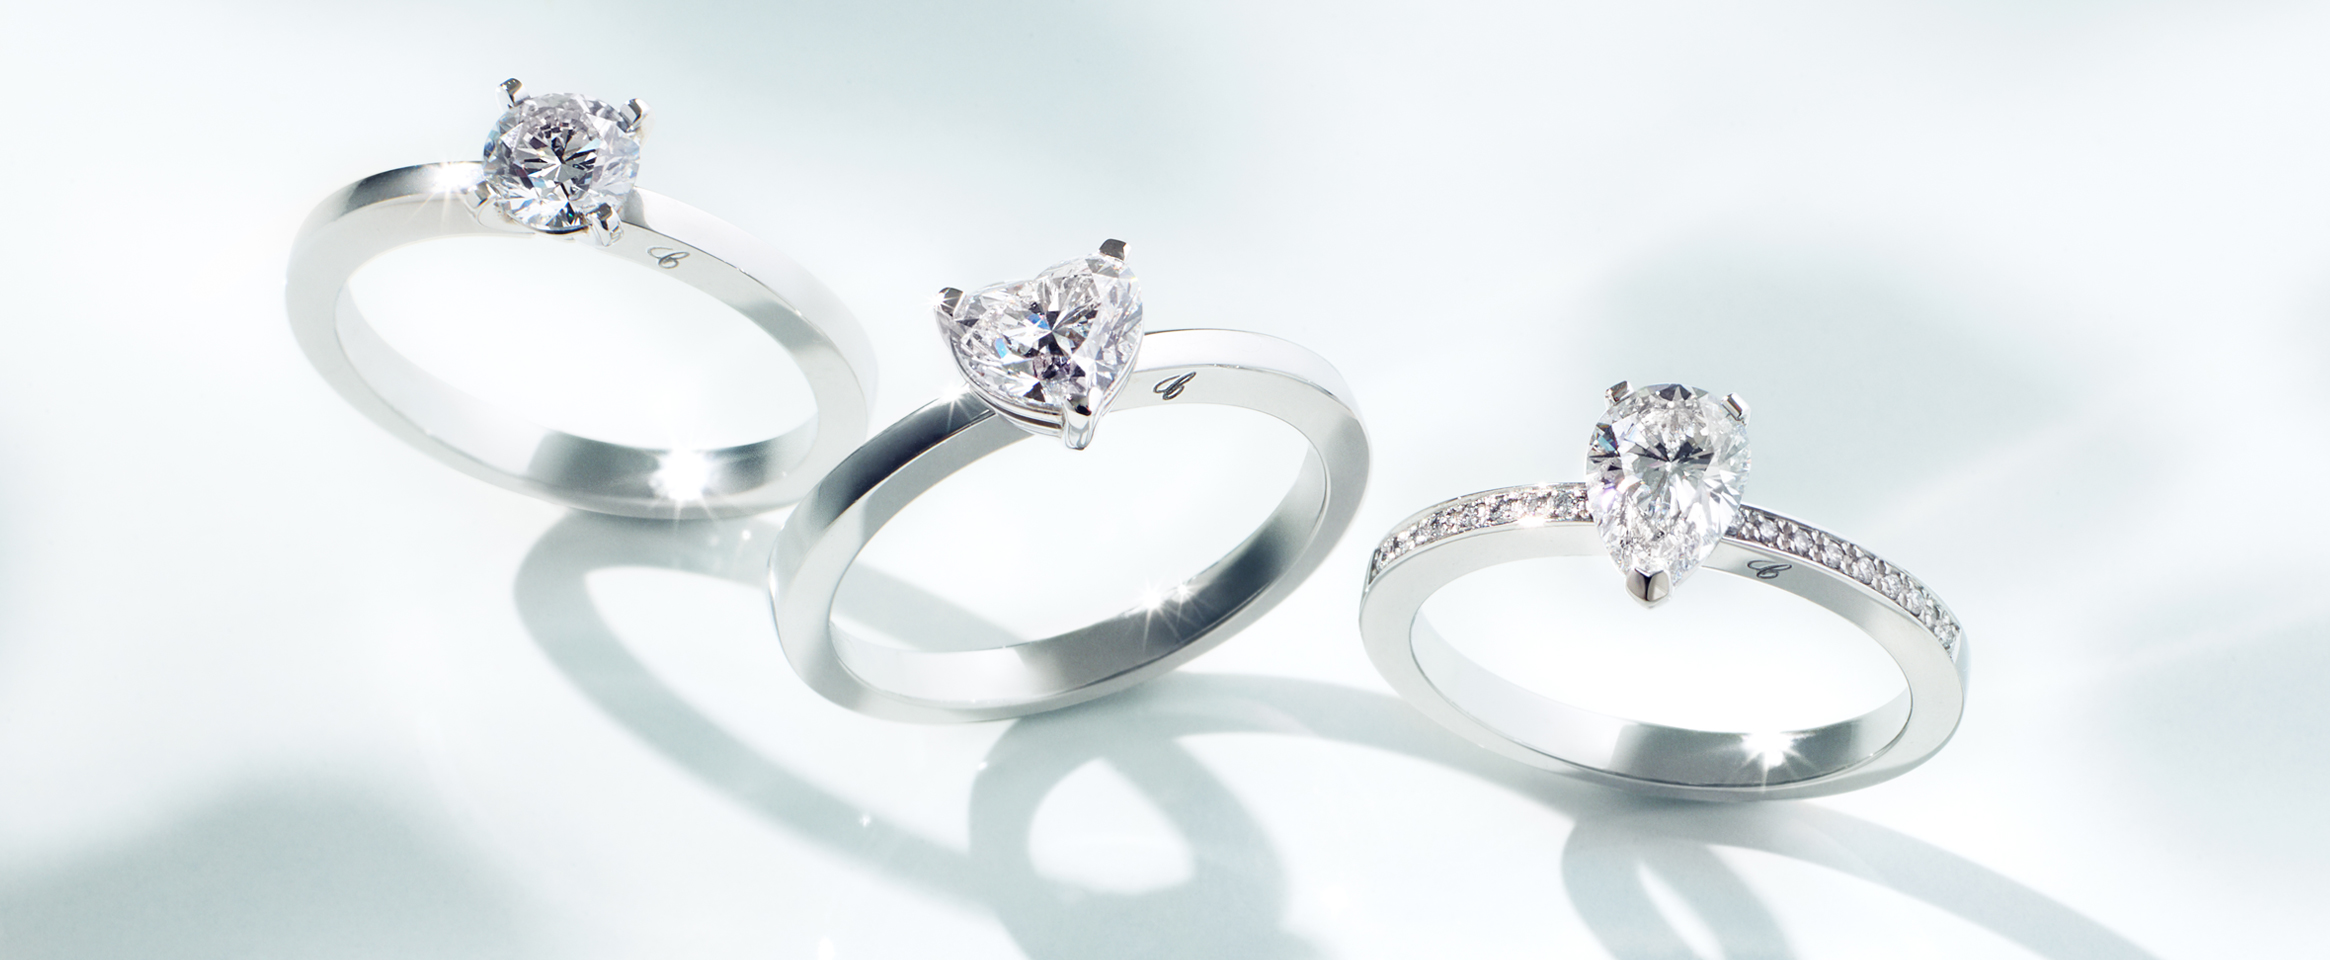 close-up view of 3 platinum solitaires engagement rings with 3 different diamond cuts, round, heart and pear